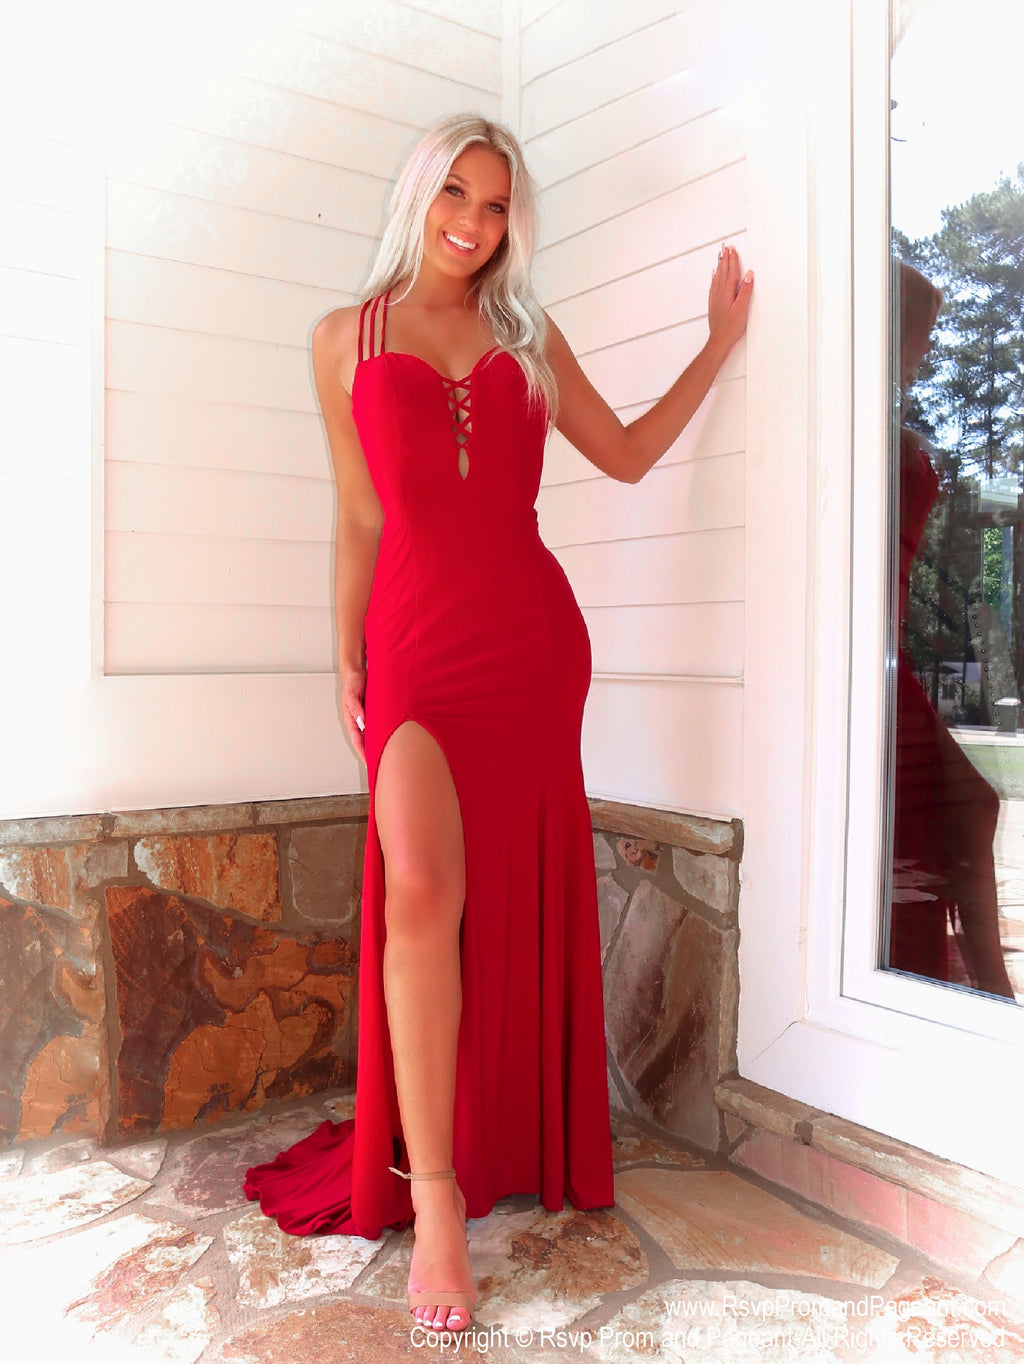 Model in a fabulous red dress featuring a plunging v neckline, a slit and a crisscross strappy open back. And it's at Rsvp Prom and Pageant, your source for the HOTTEST Prom and Pageant Dresses and exclusive evening gowns and located in Atlanta, Georgia!